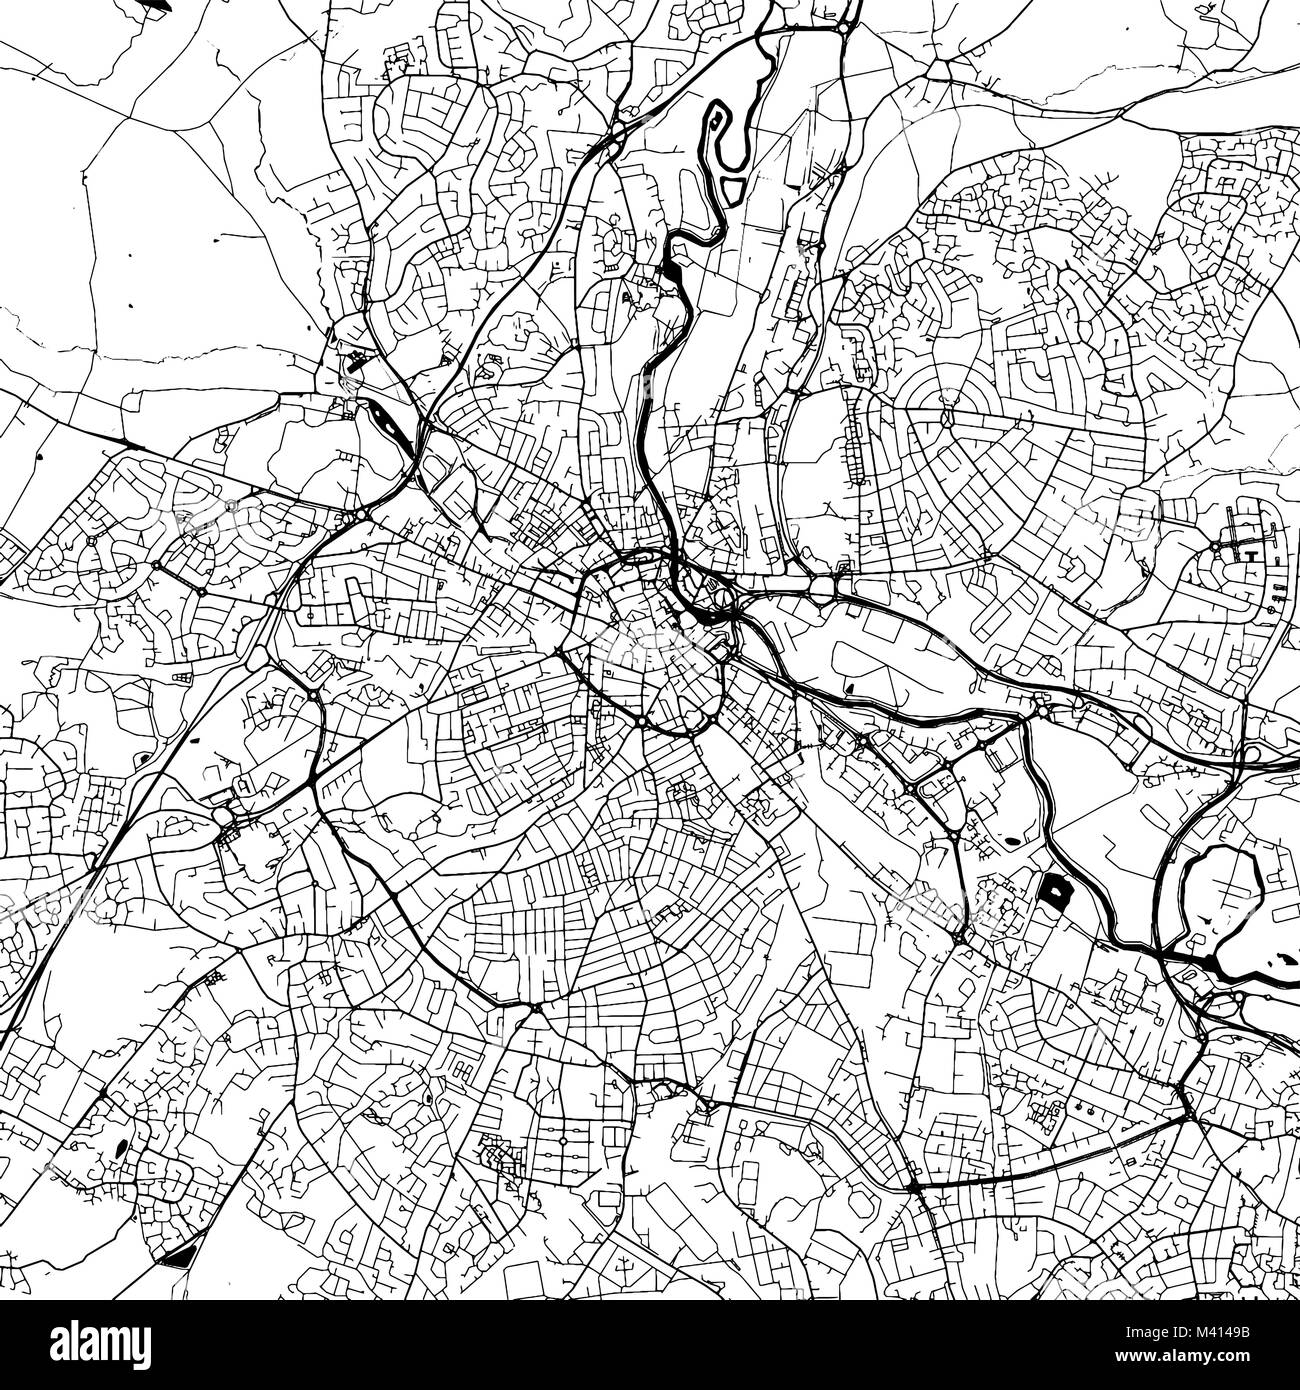 Derby Street Map Stock Photos & Derby Street Map Stock Images - Alamy